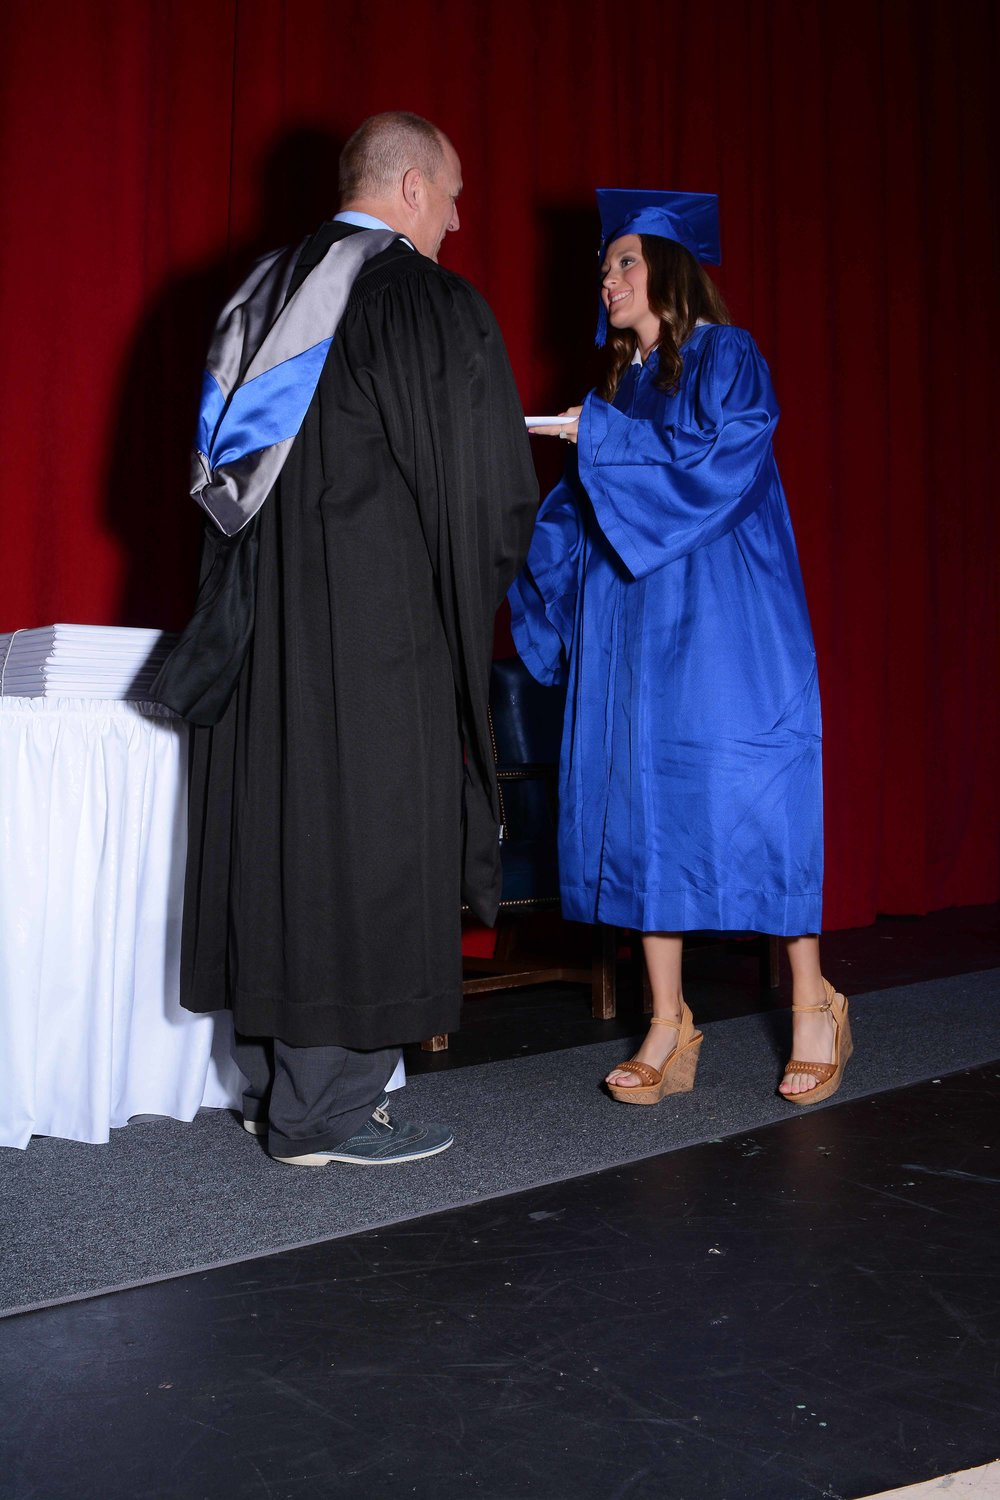 May14 Commencement105.jpg